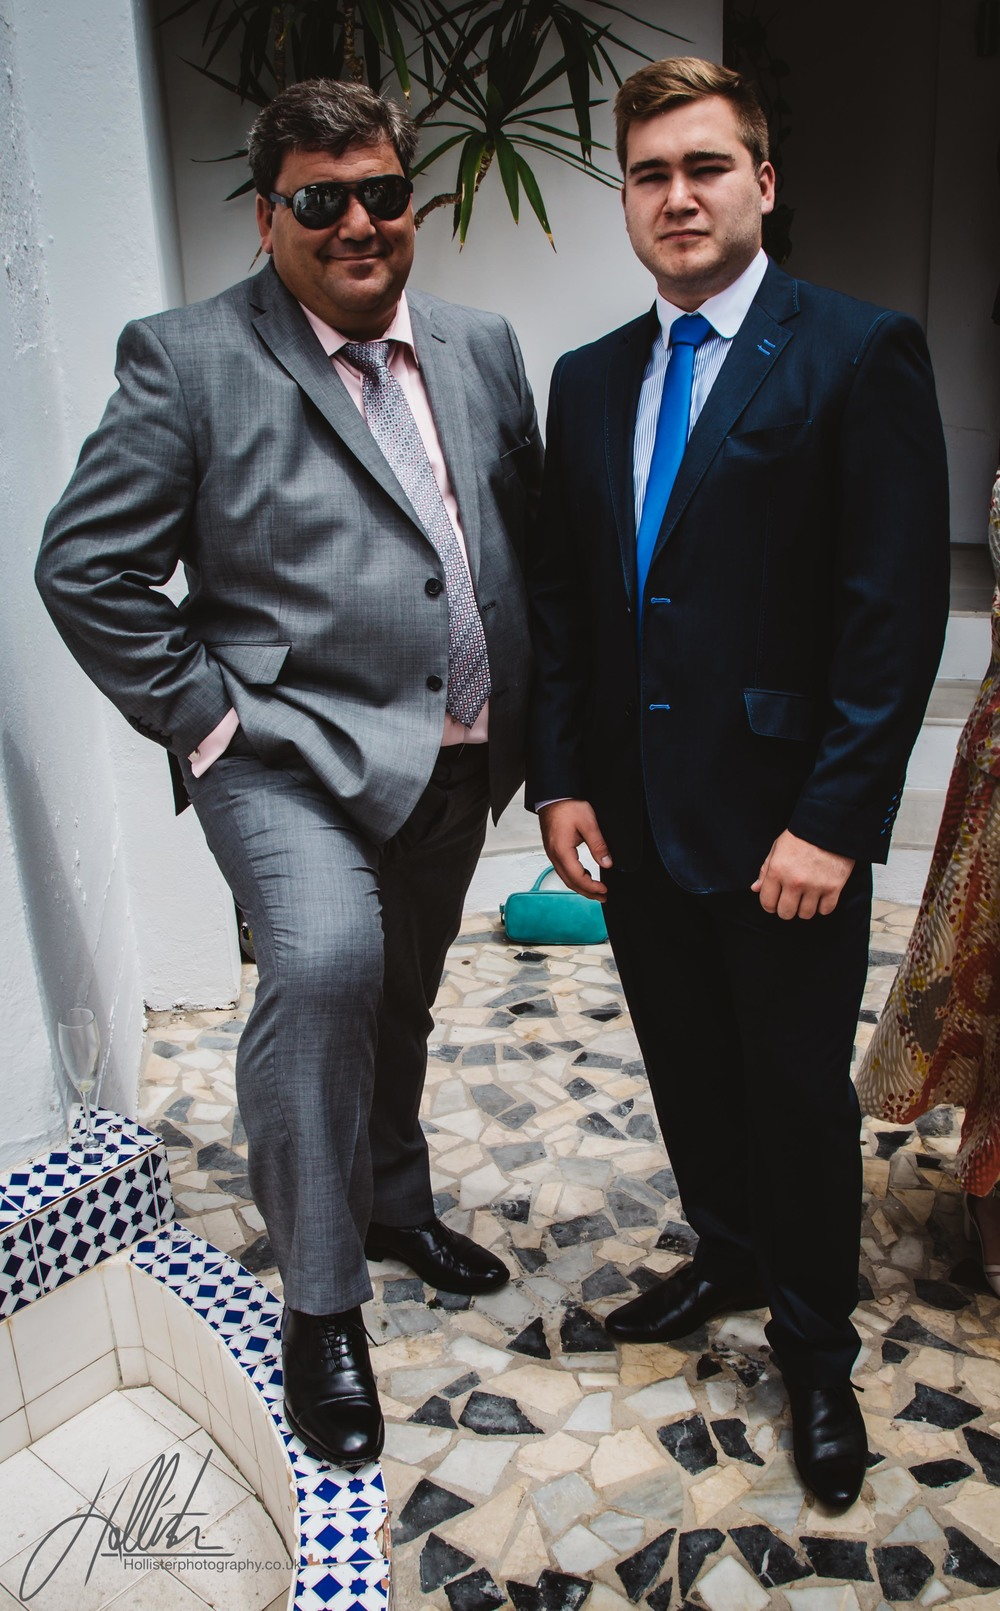 Stu and Firons Gibraltan Wedding june 6th 2015  WATERMARKED-66.jpg